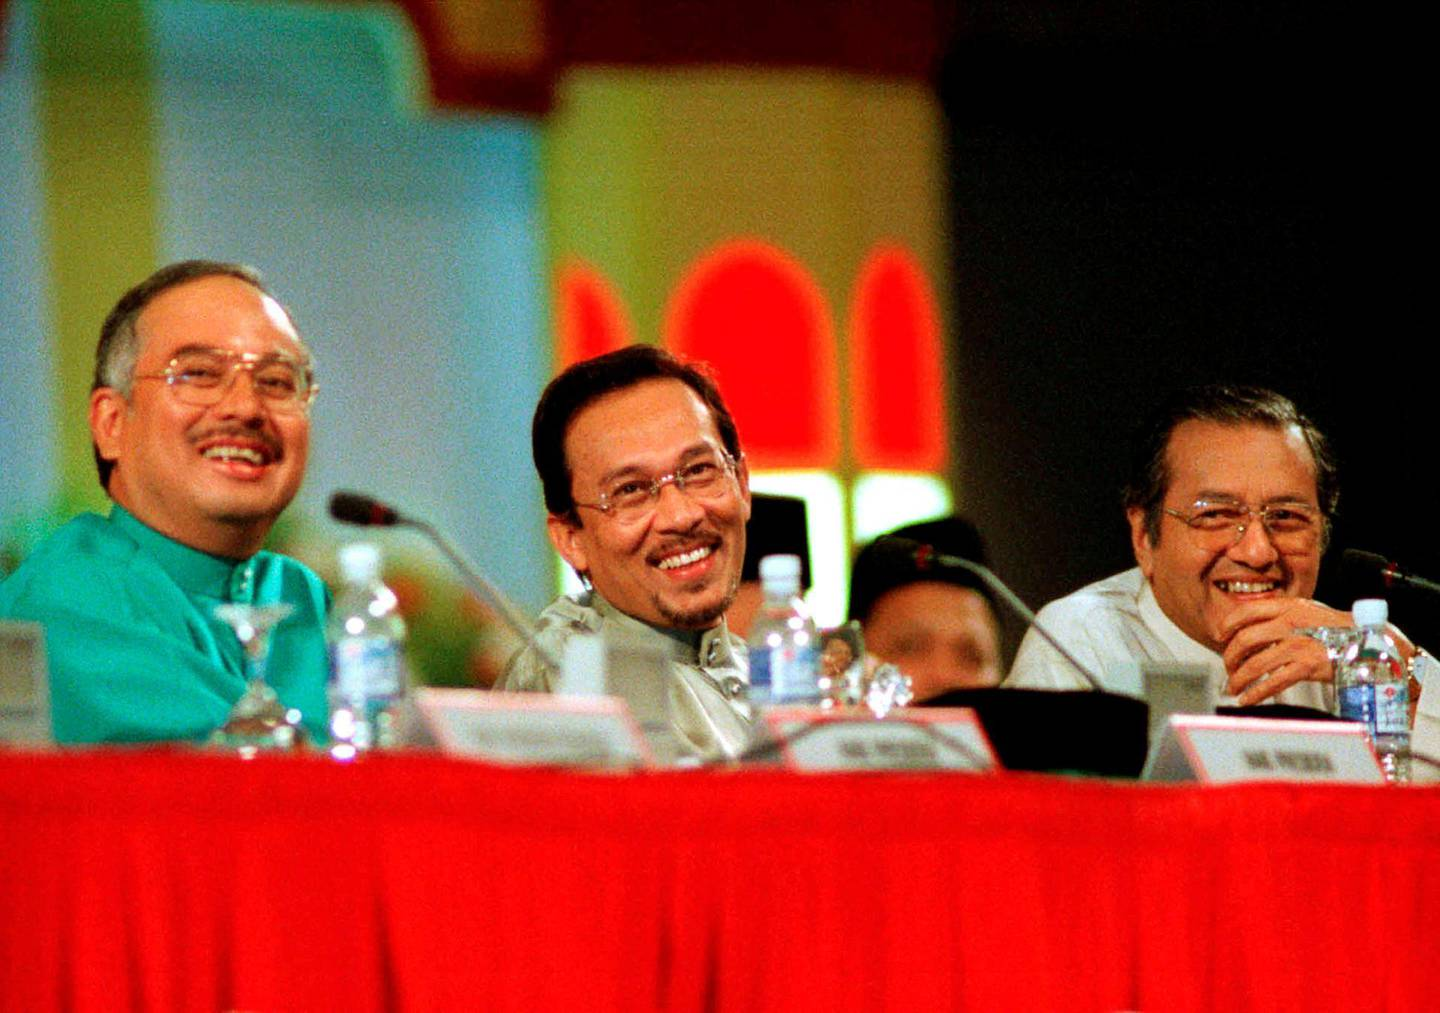 FILE PHOTO: Malaysia's Education Minister Najib Razak, Deputy Prime Minister Anwar Ibrahim and Prime Minister Mahathir Mohamad (L-R) laugh at a joke by one of the delegates during the United Malays National Organisation's (UMNO) annual general assembly in Kuala Lumpur, June 20, 1998. REUTERS/Stringer/File Photo